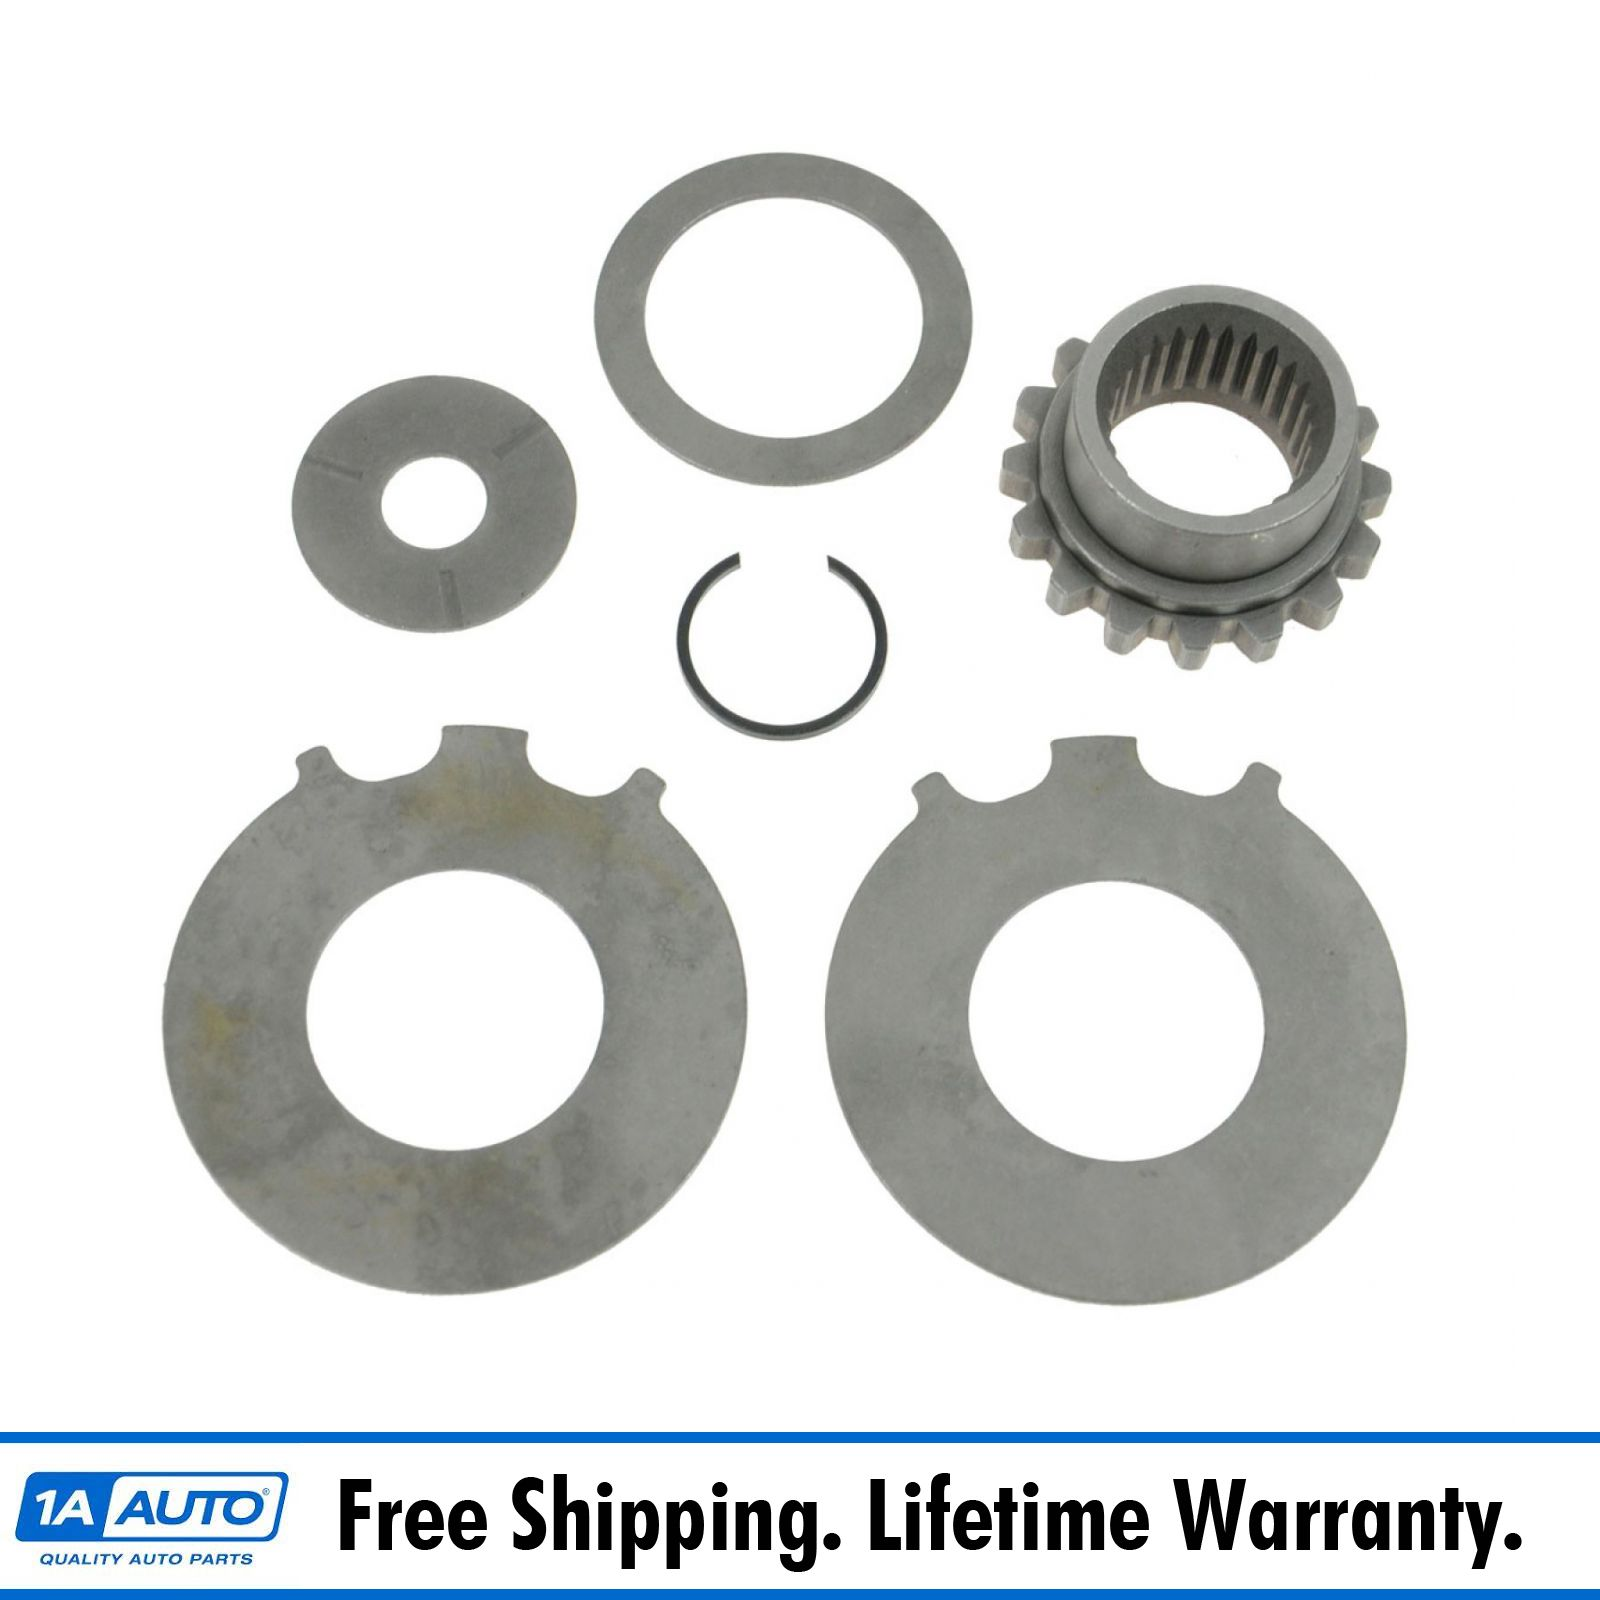 Front Differential Vacuum Shift Fork Gear Kit for S10 Blazer S15 Sonoma Pickup